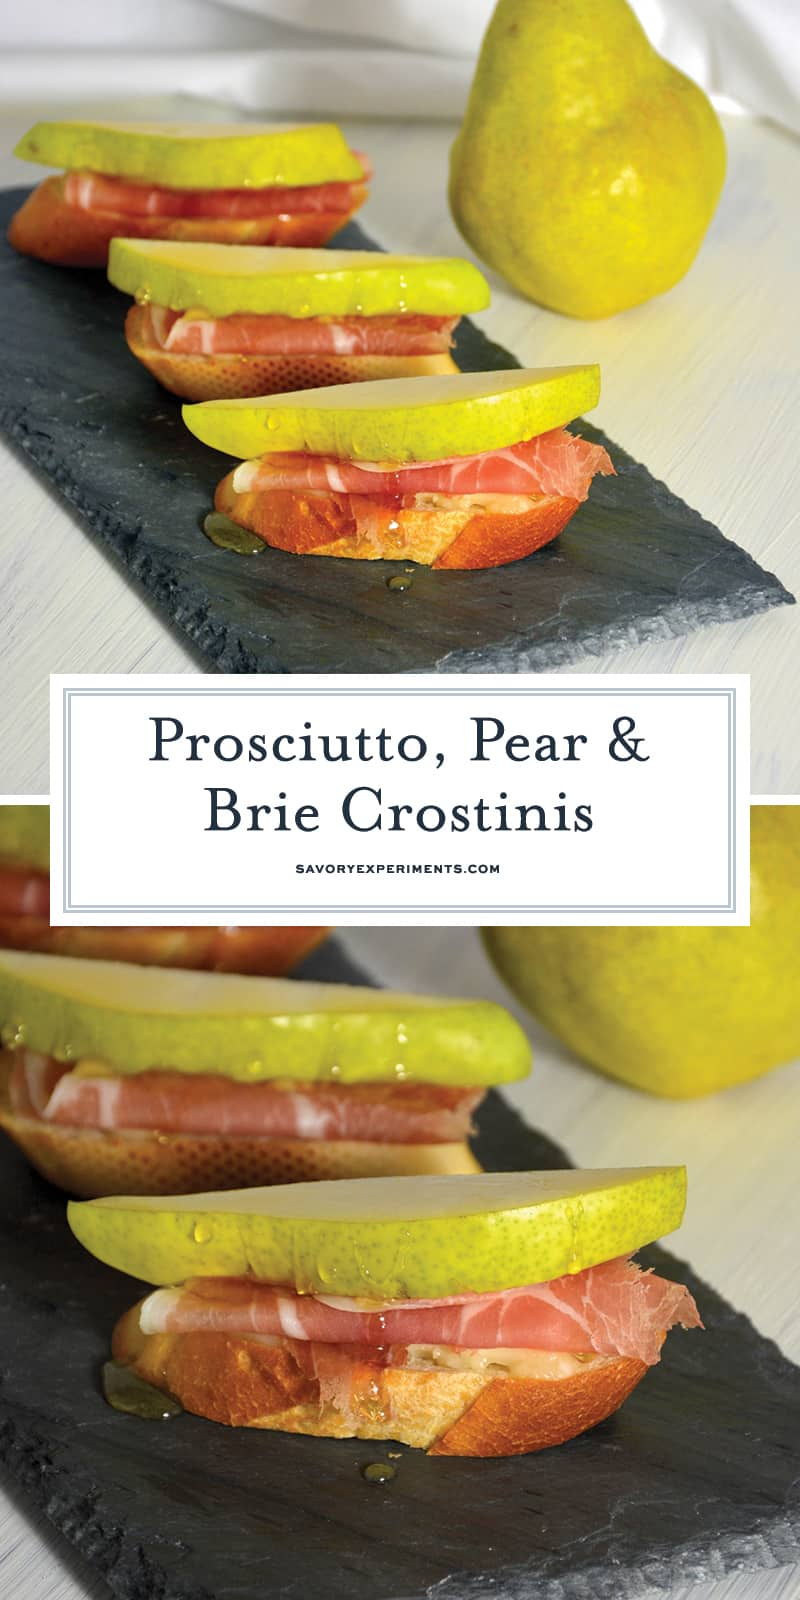 Prosciutto, Pear, and Brie Crostinis fit the bill for any party with tender prosciutto draped over warm brie and topped with a slice of pear and honey. #prosciutto #briecrostinis #crostinis www.savoryexperiments.com